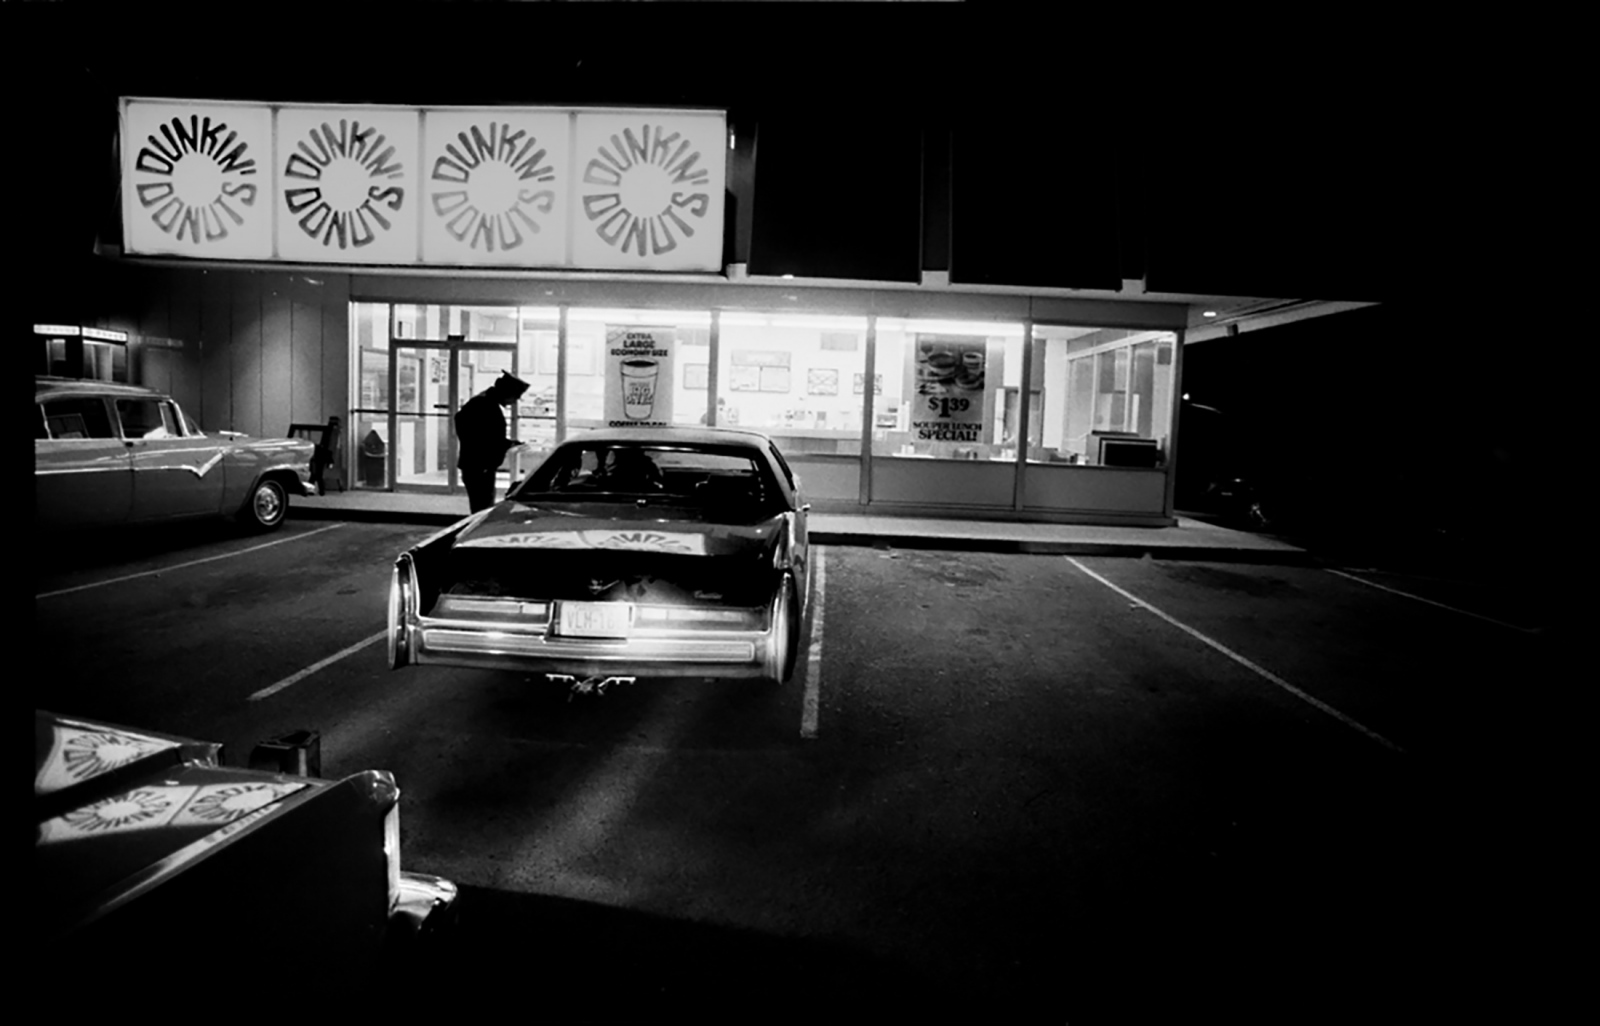 Cop at donut shop, DUI stop and arrest, Arizona, USA, 1980,